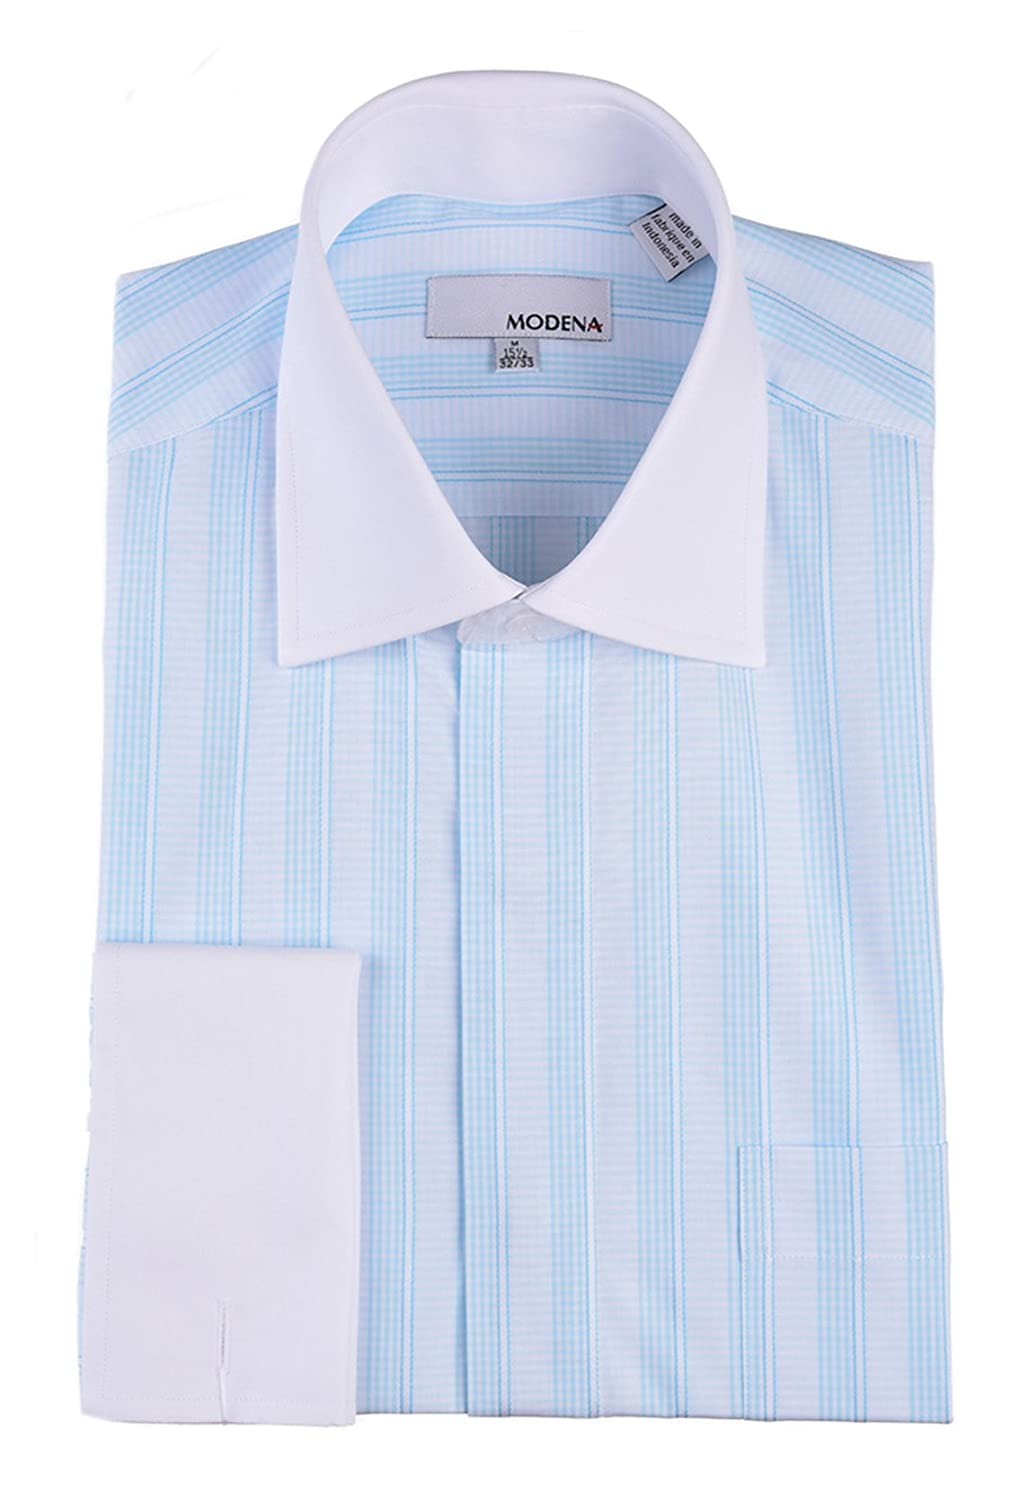 Modena Mens Light Blue Striped with White Contrast Collar   French Cuff Dress  Shirt at Amazon Men s Clothing store  a73f76dd4